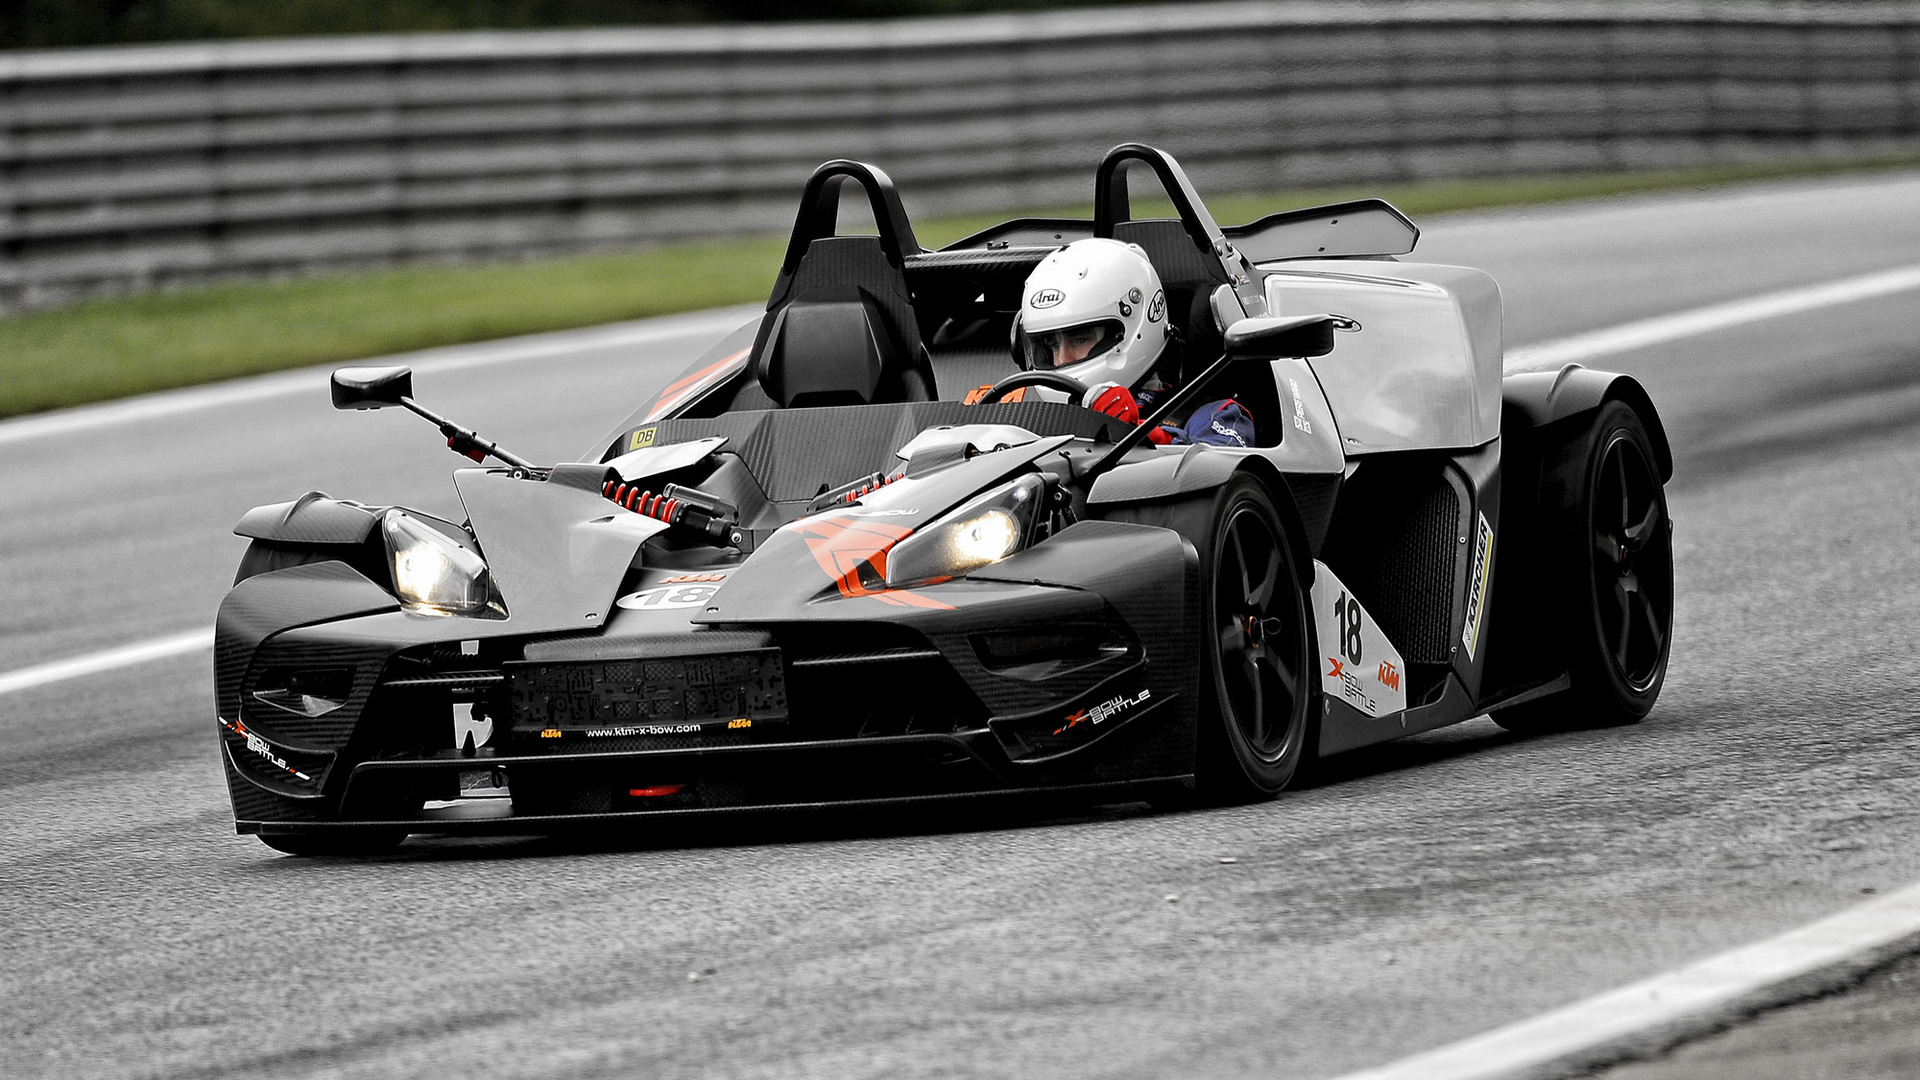 KTM X Bow RR 2012 Wallpapers And HD Images